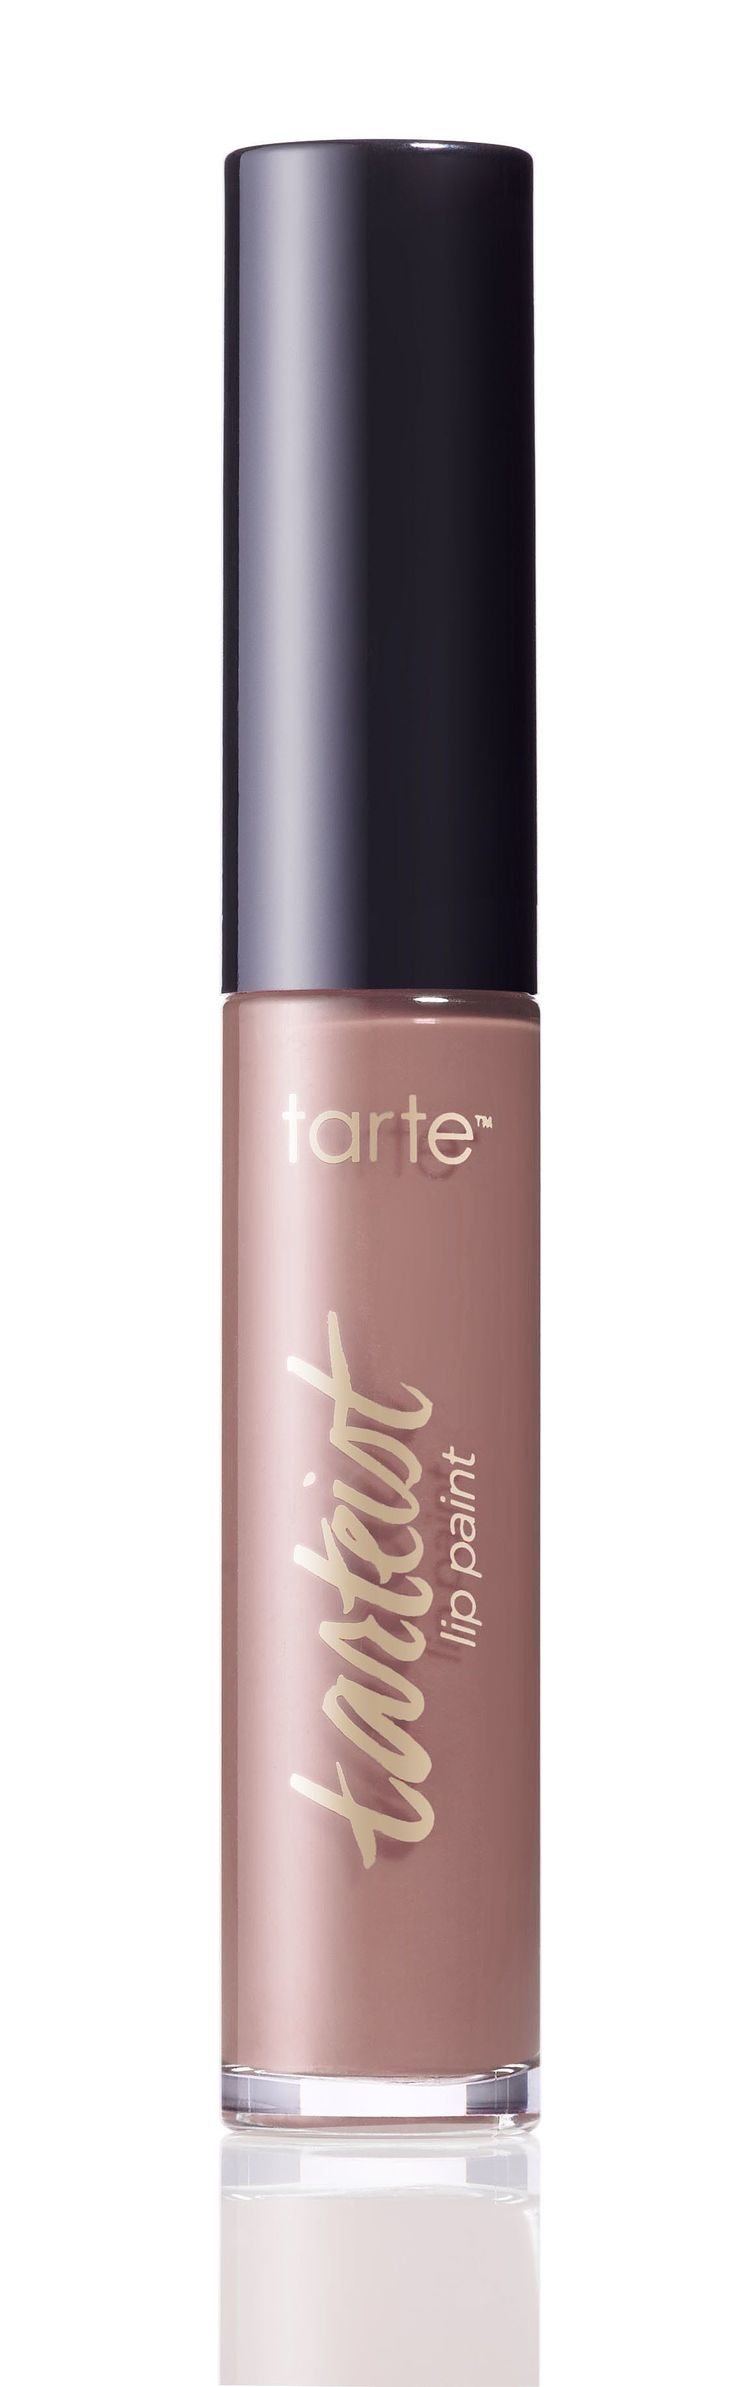 Tarte Cosmetics Tarteist Lip Paint in Namaste